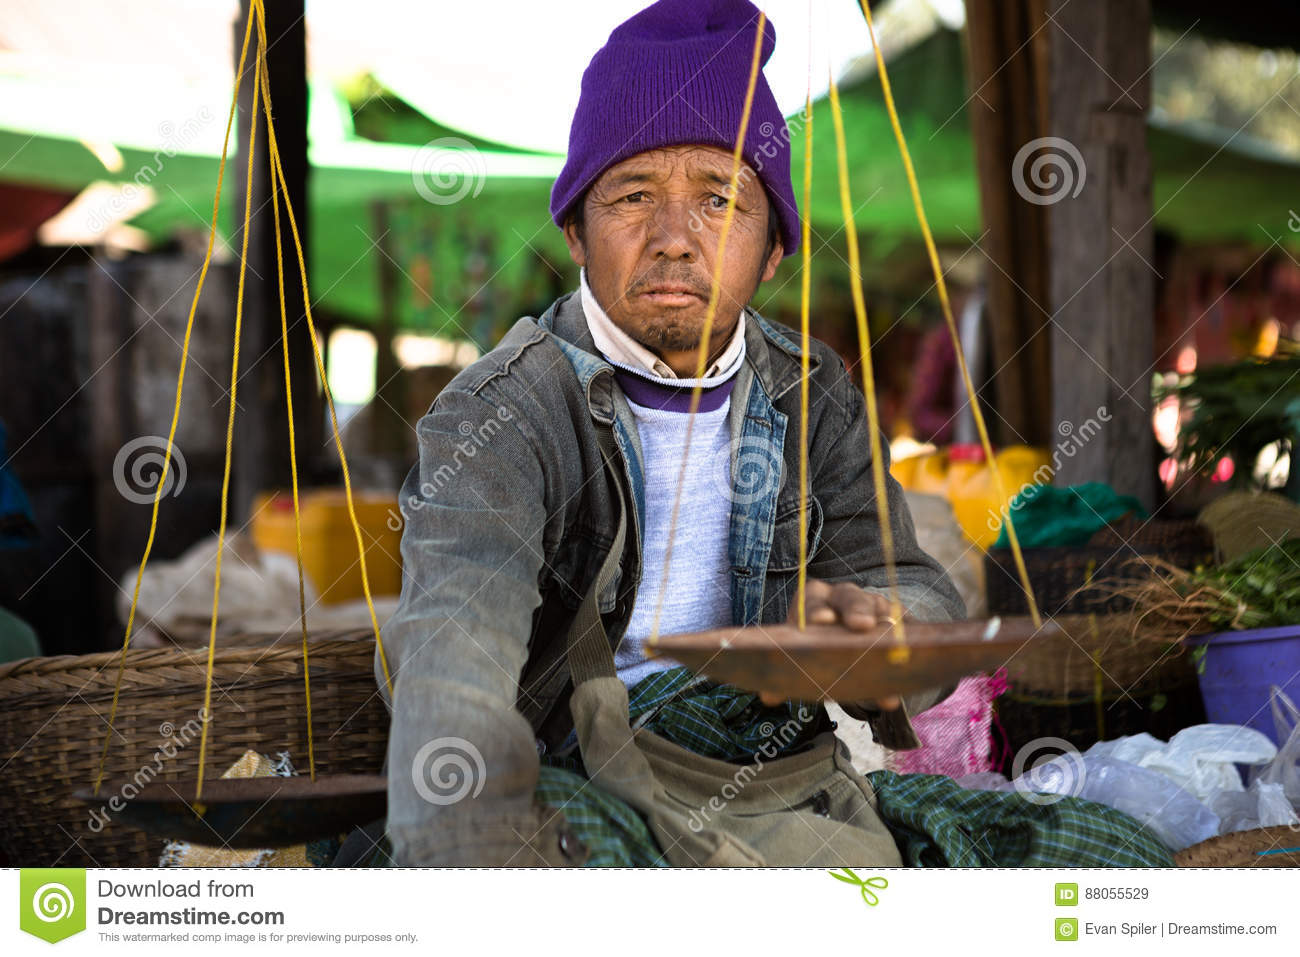 Burmese Vendor In Purple Hat Holds A Scale Used To Measure